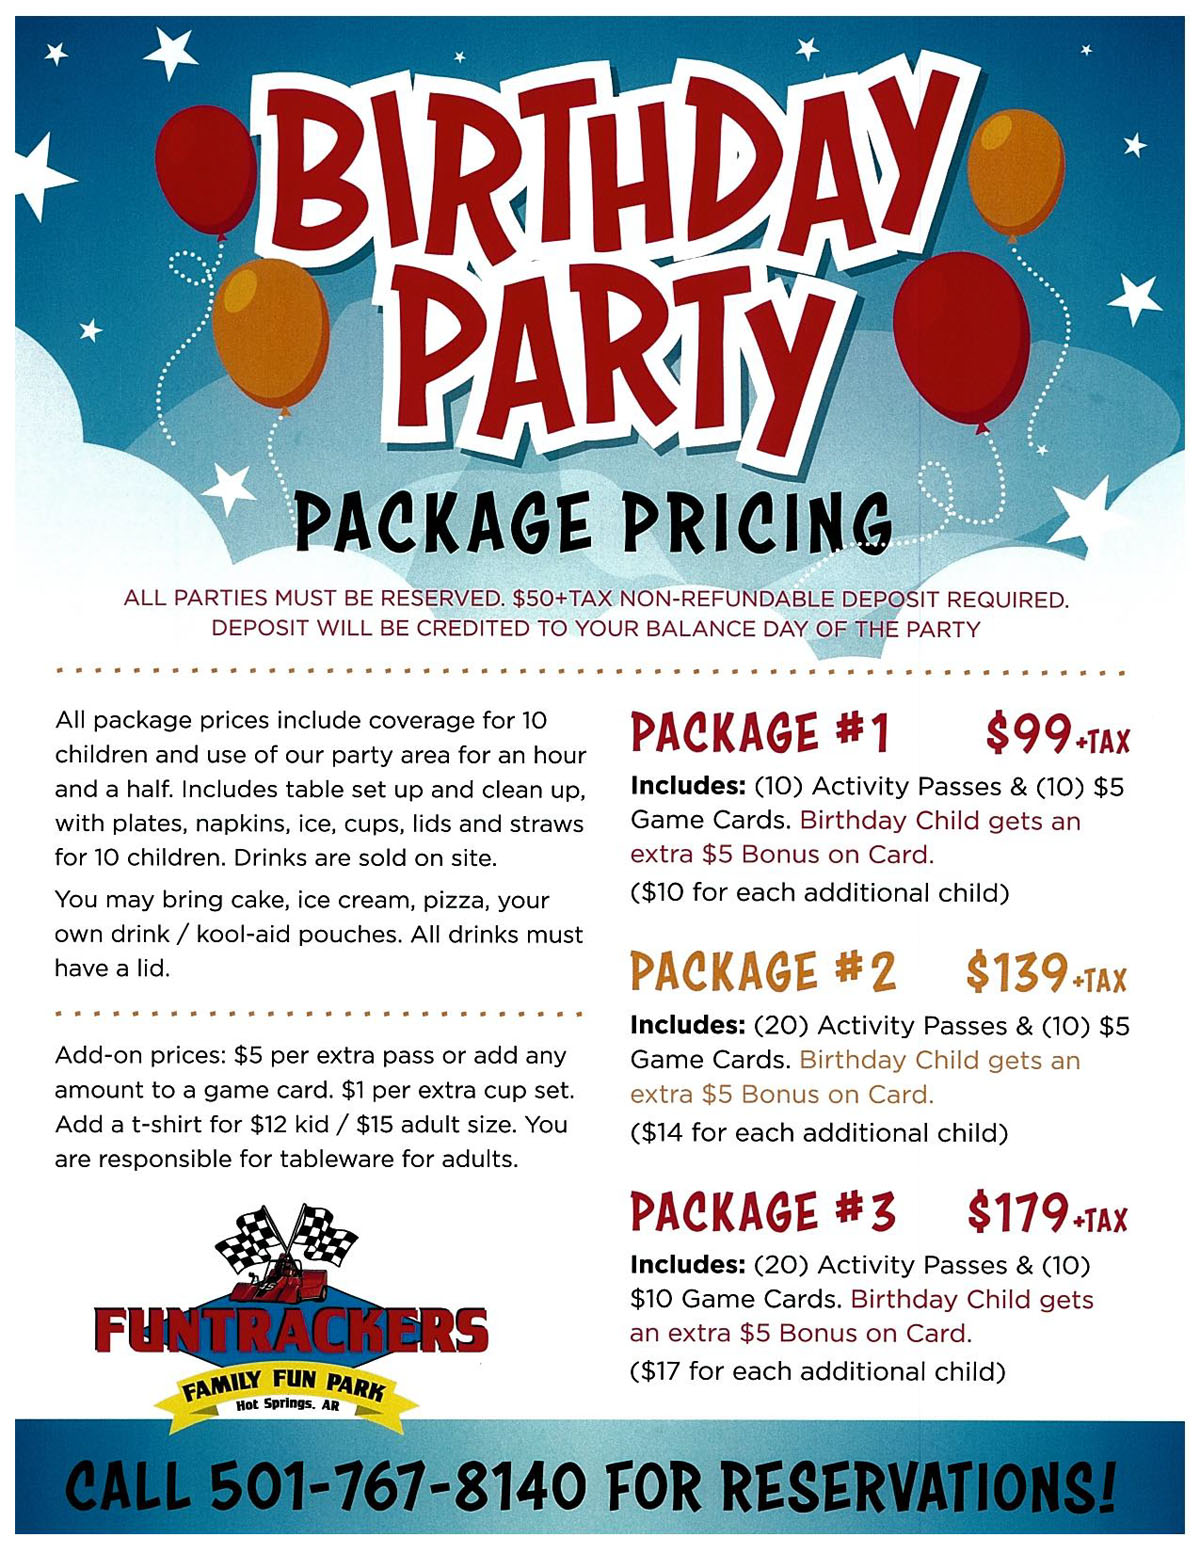 Funtrackers Birthday Party Package